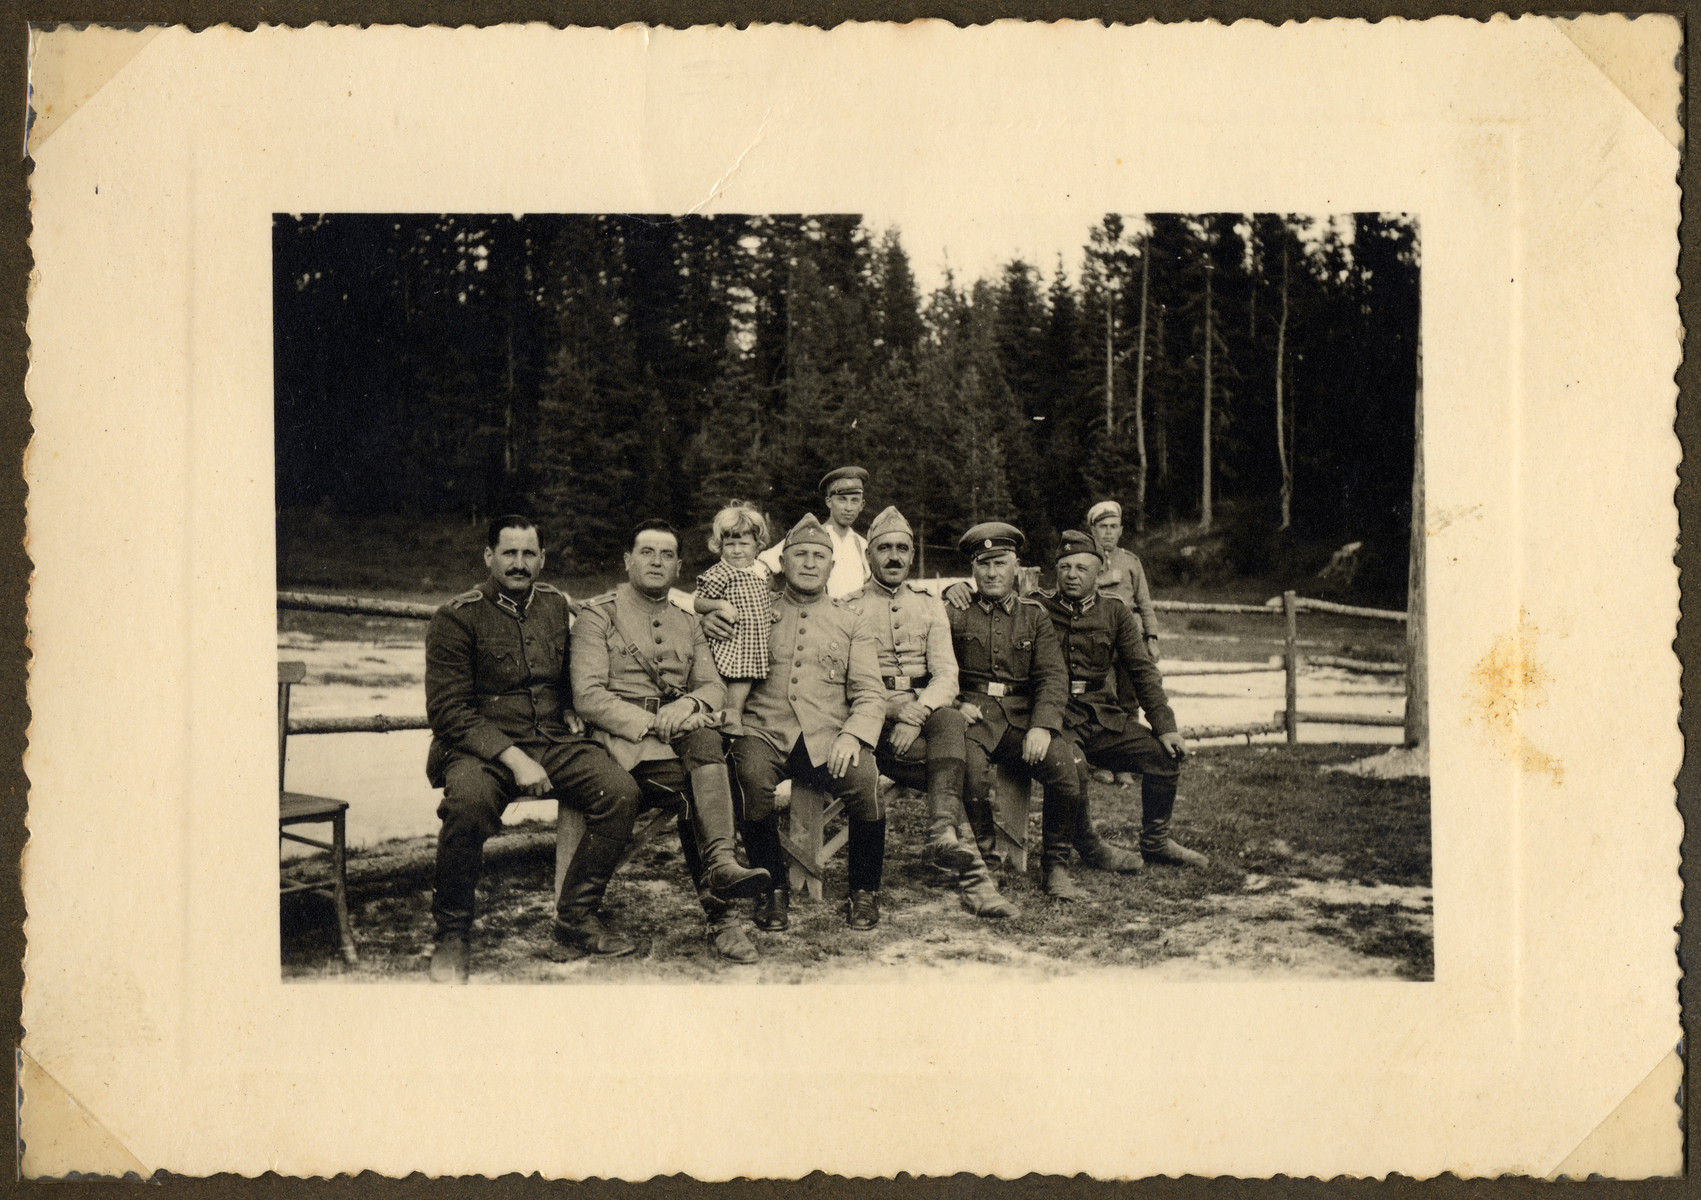 Bulgarian officers at the site of a forced labor battalion.  In Bulgaria, Jewish army officers were allowed to serve as officers in uniform.  Pictured second from the left is Nissim Farhi.